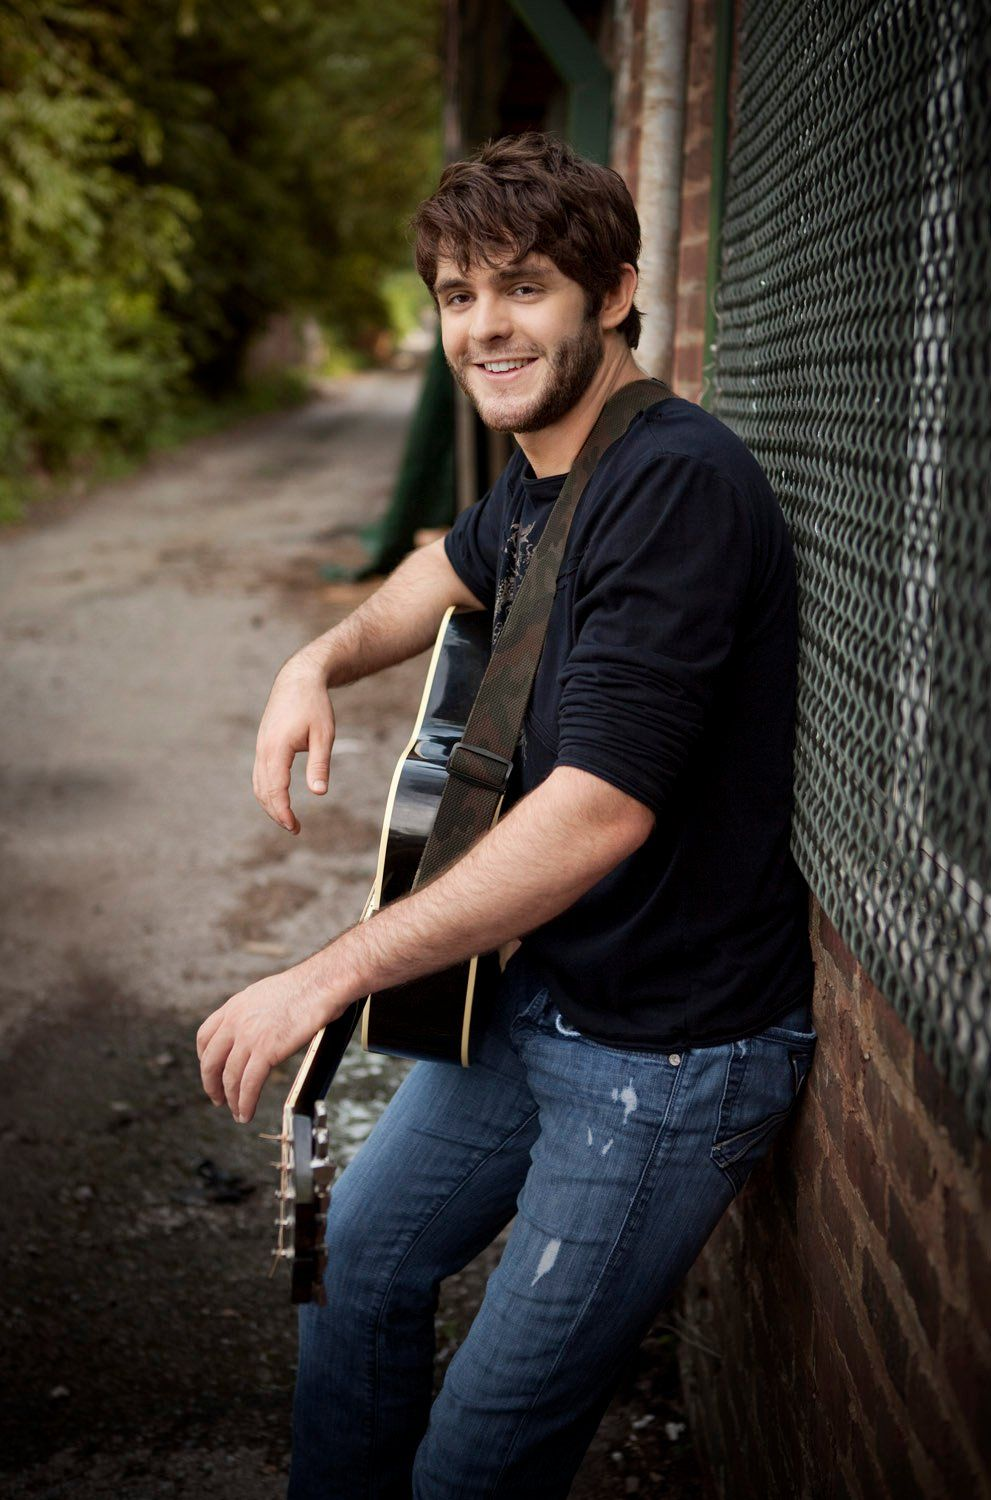 Photos Thomas rhett, Country music artists, Country